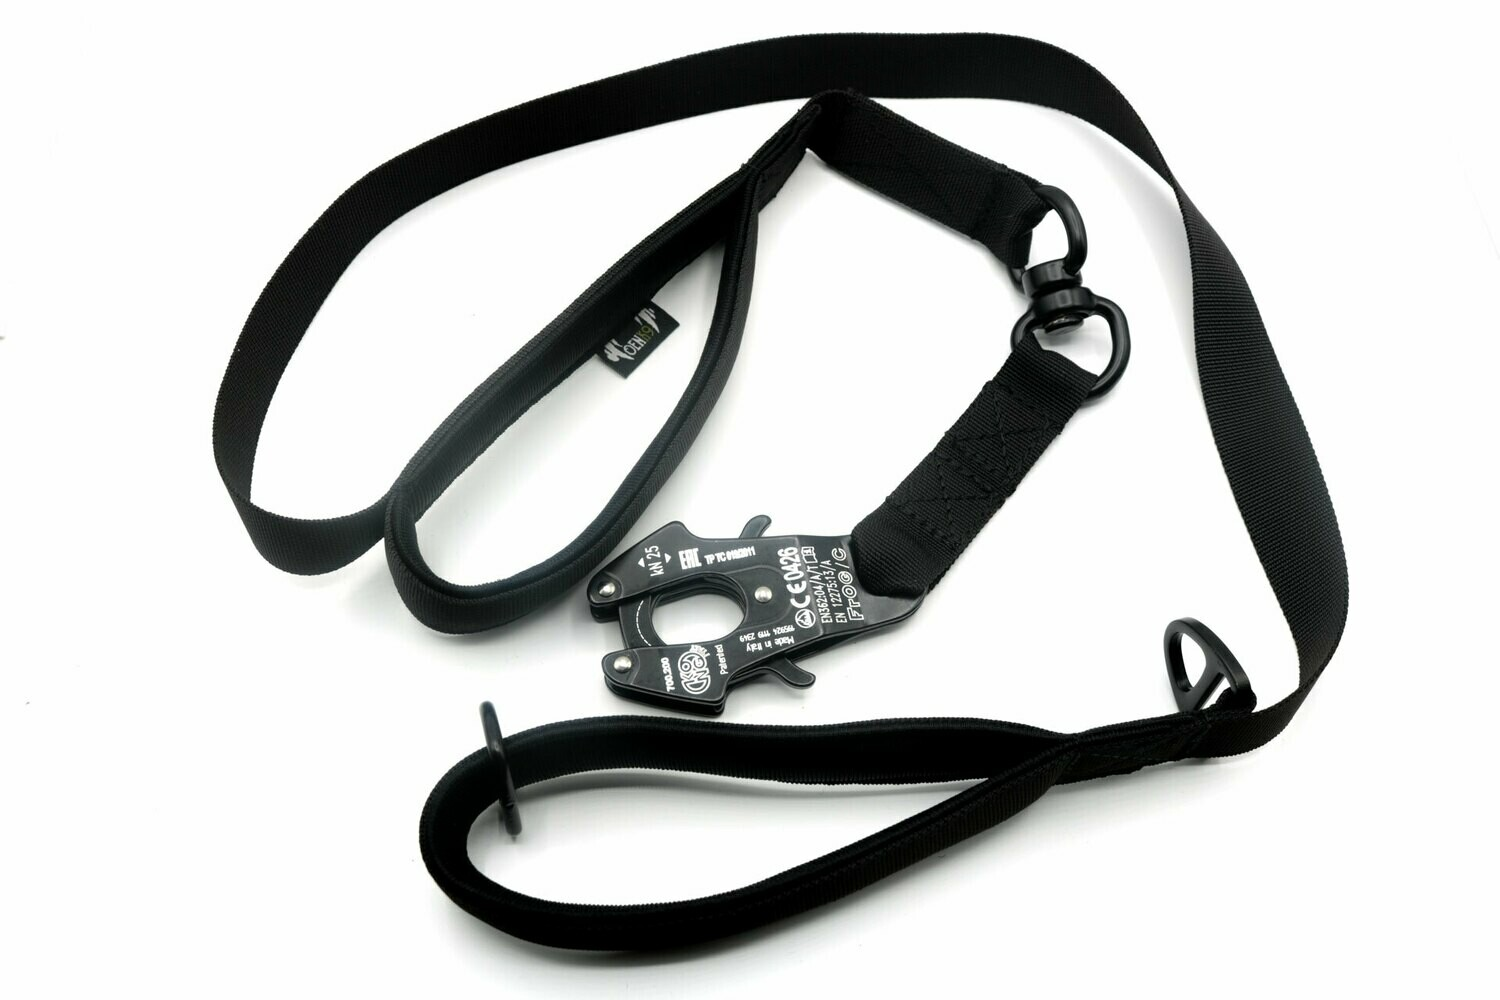 INTERVENTION TACTICAL LEASH, SECURITY FROG CARABINER